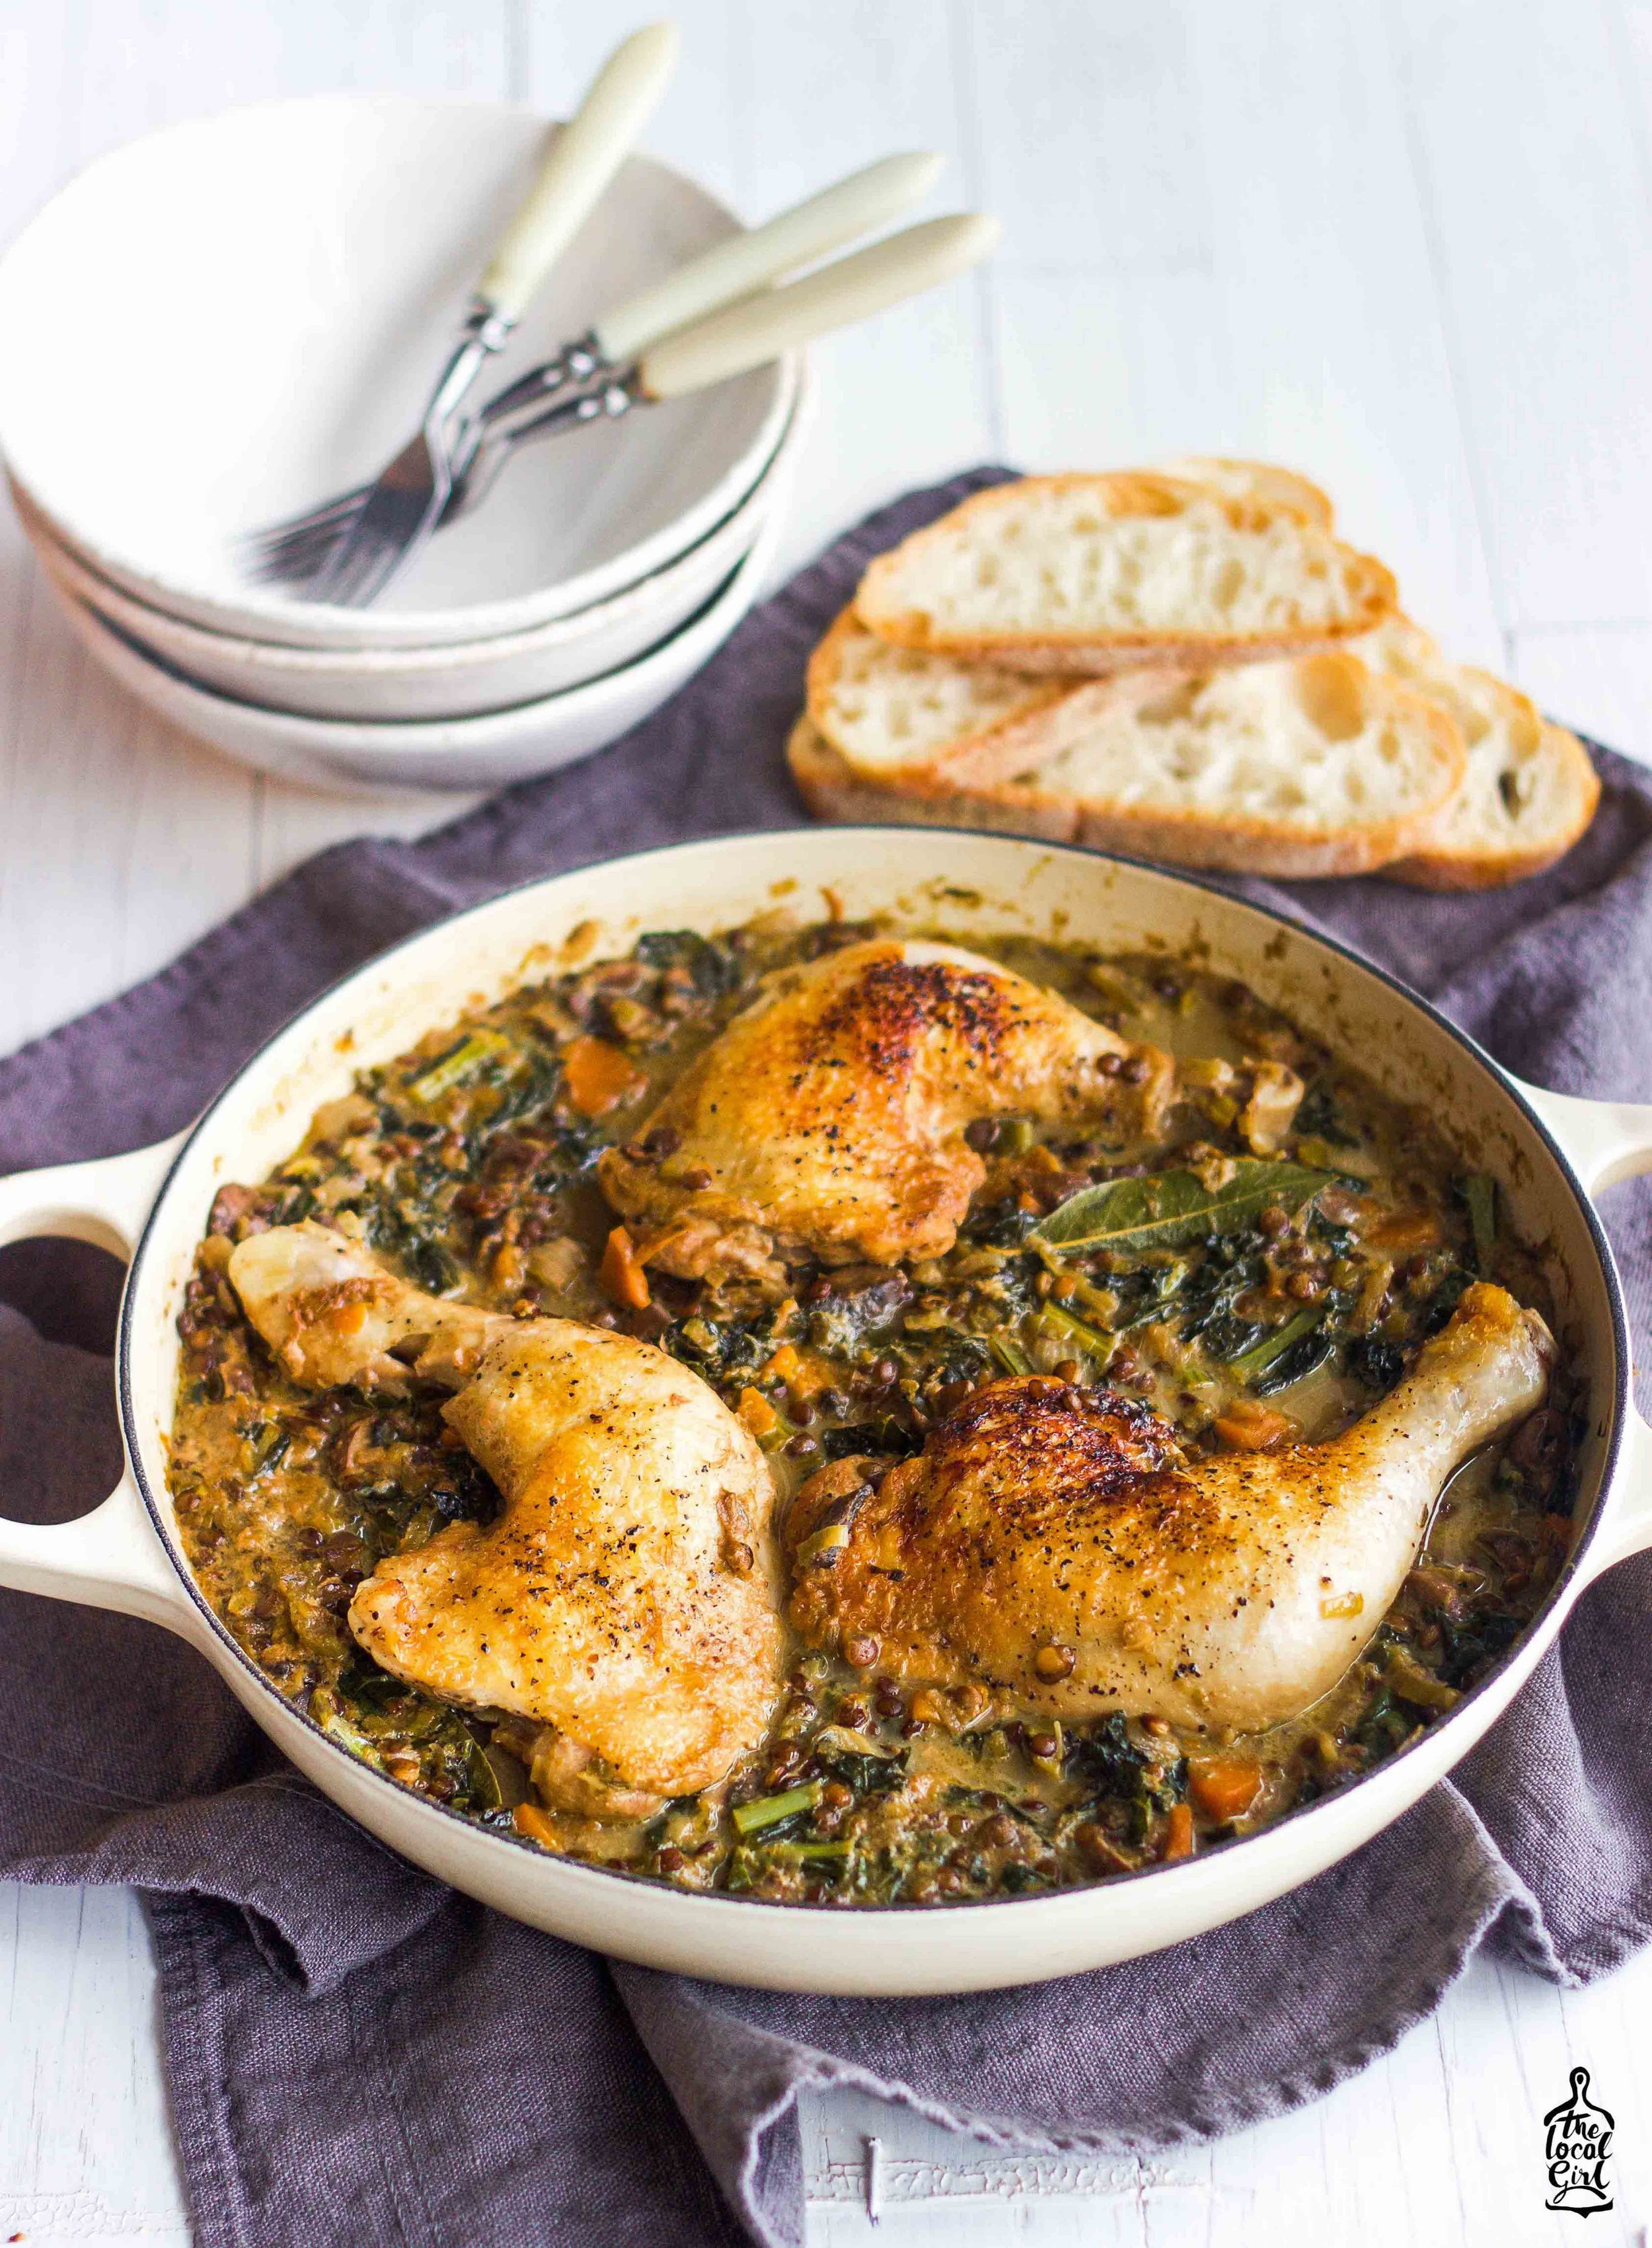 Braised lentils with chicken marylands